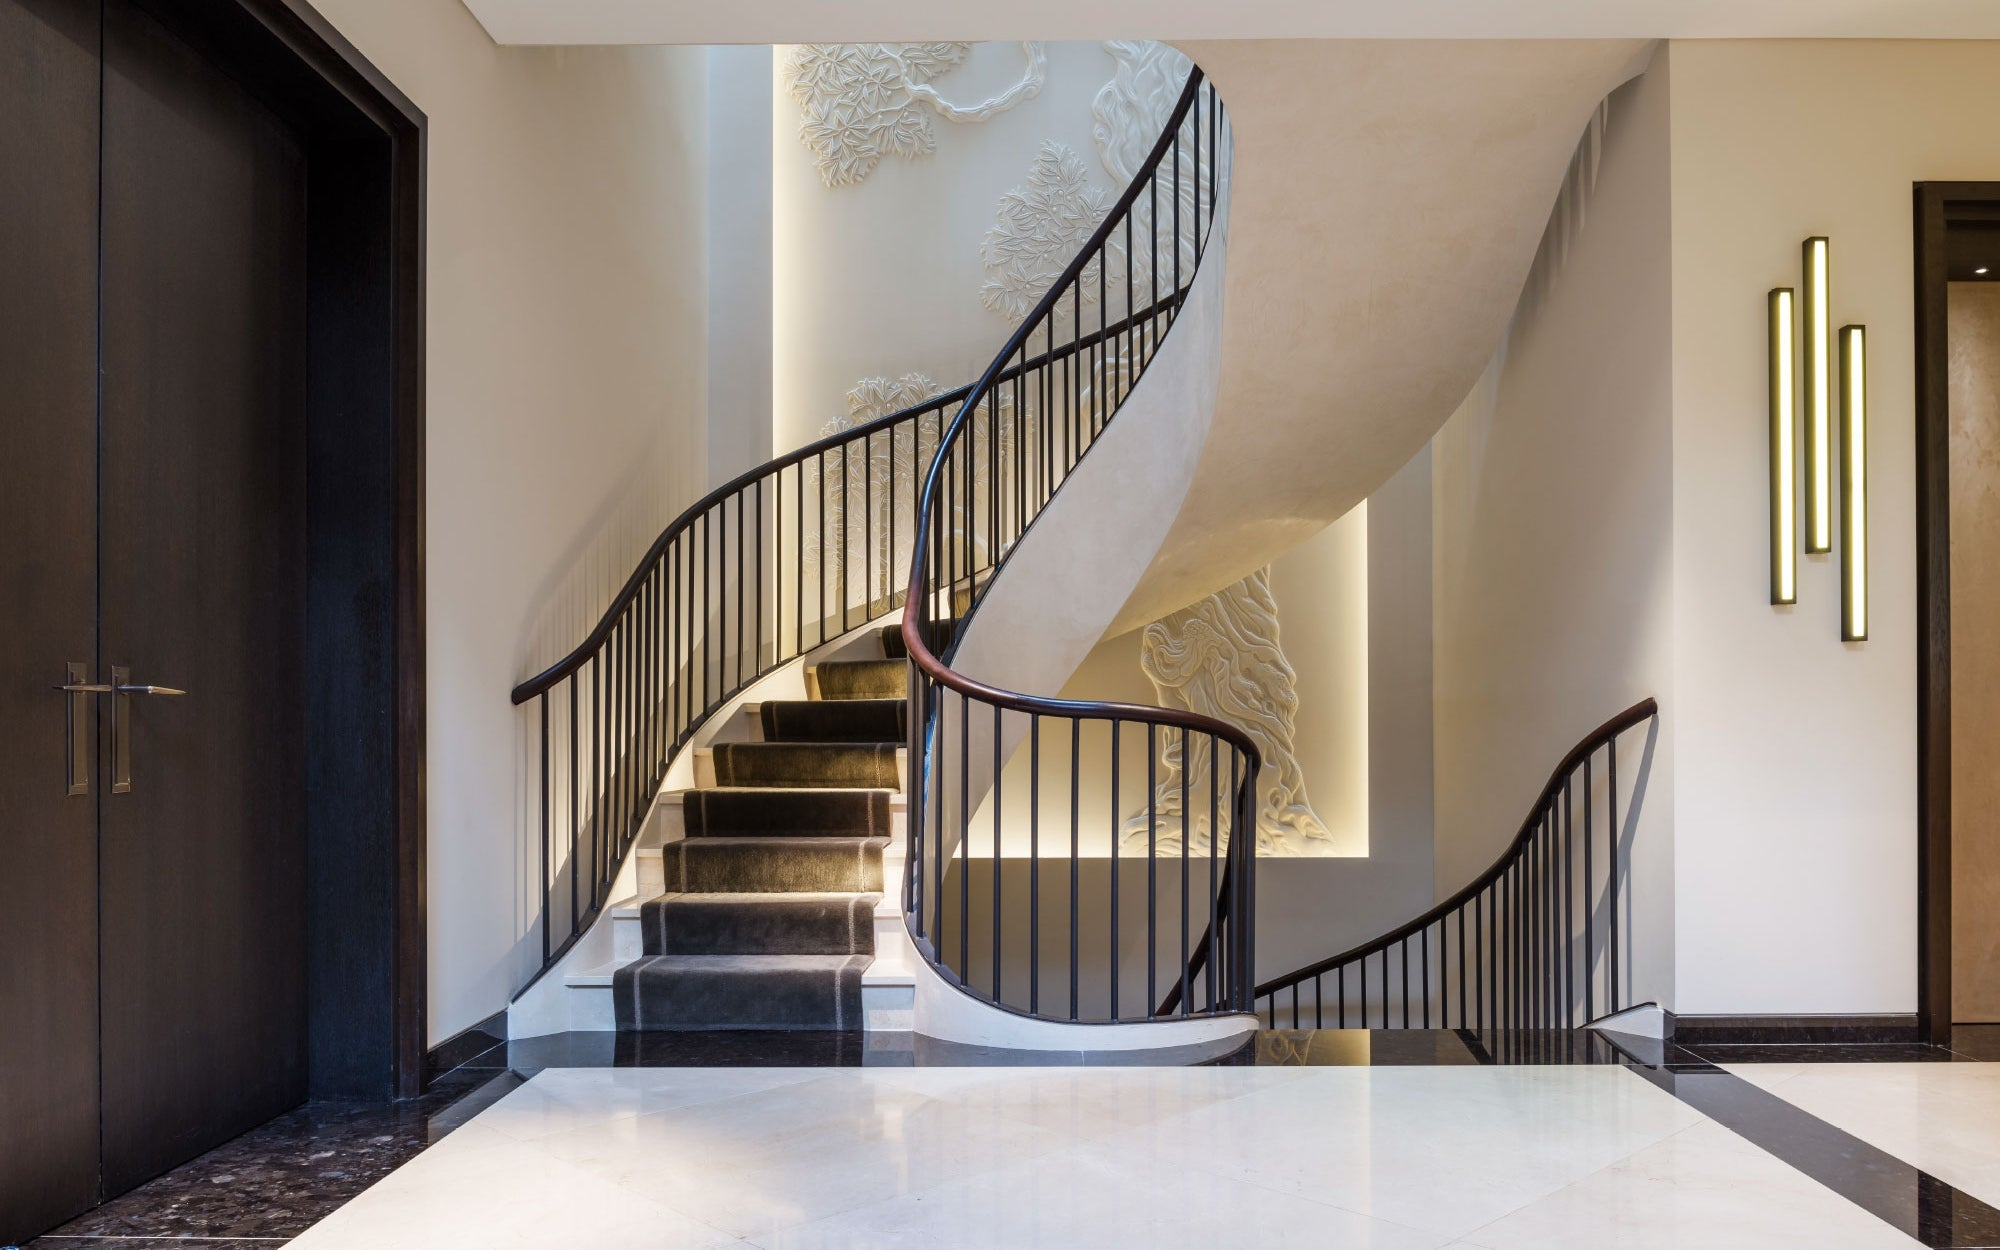 Beautiful Staircase Ideas For Your Home - runner staircase - LuxDeco.com Style Guide